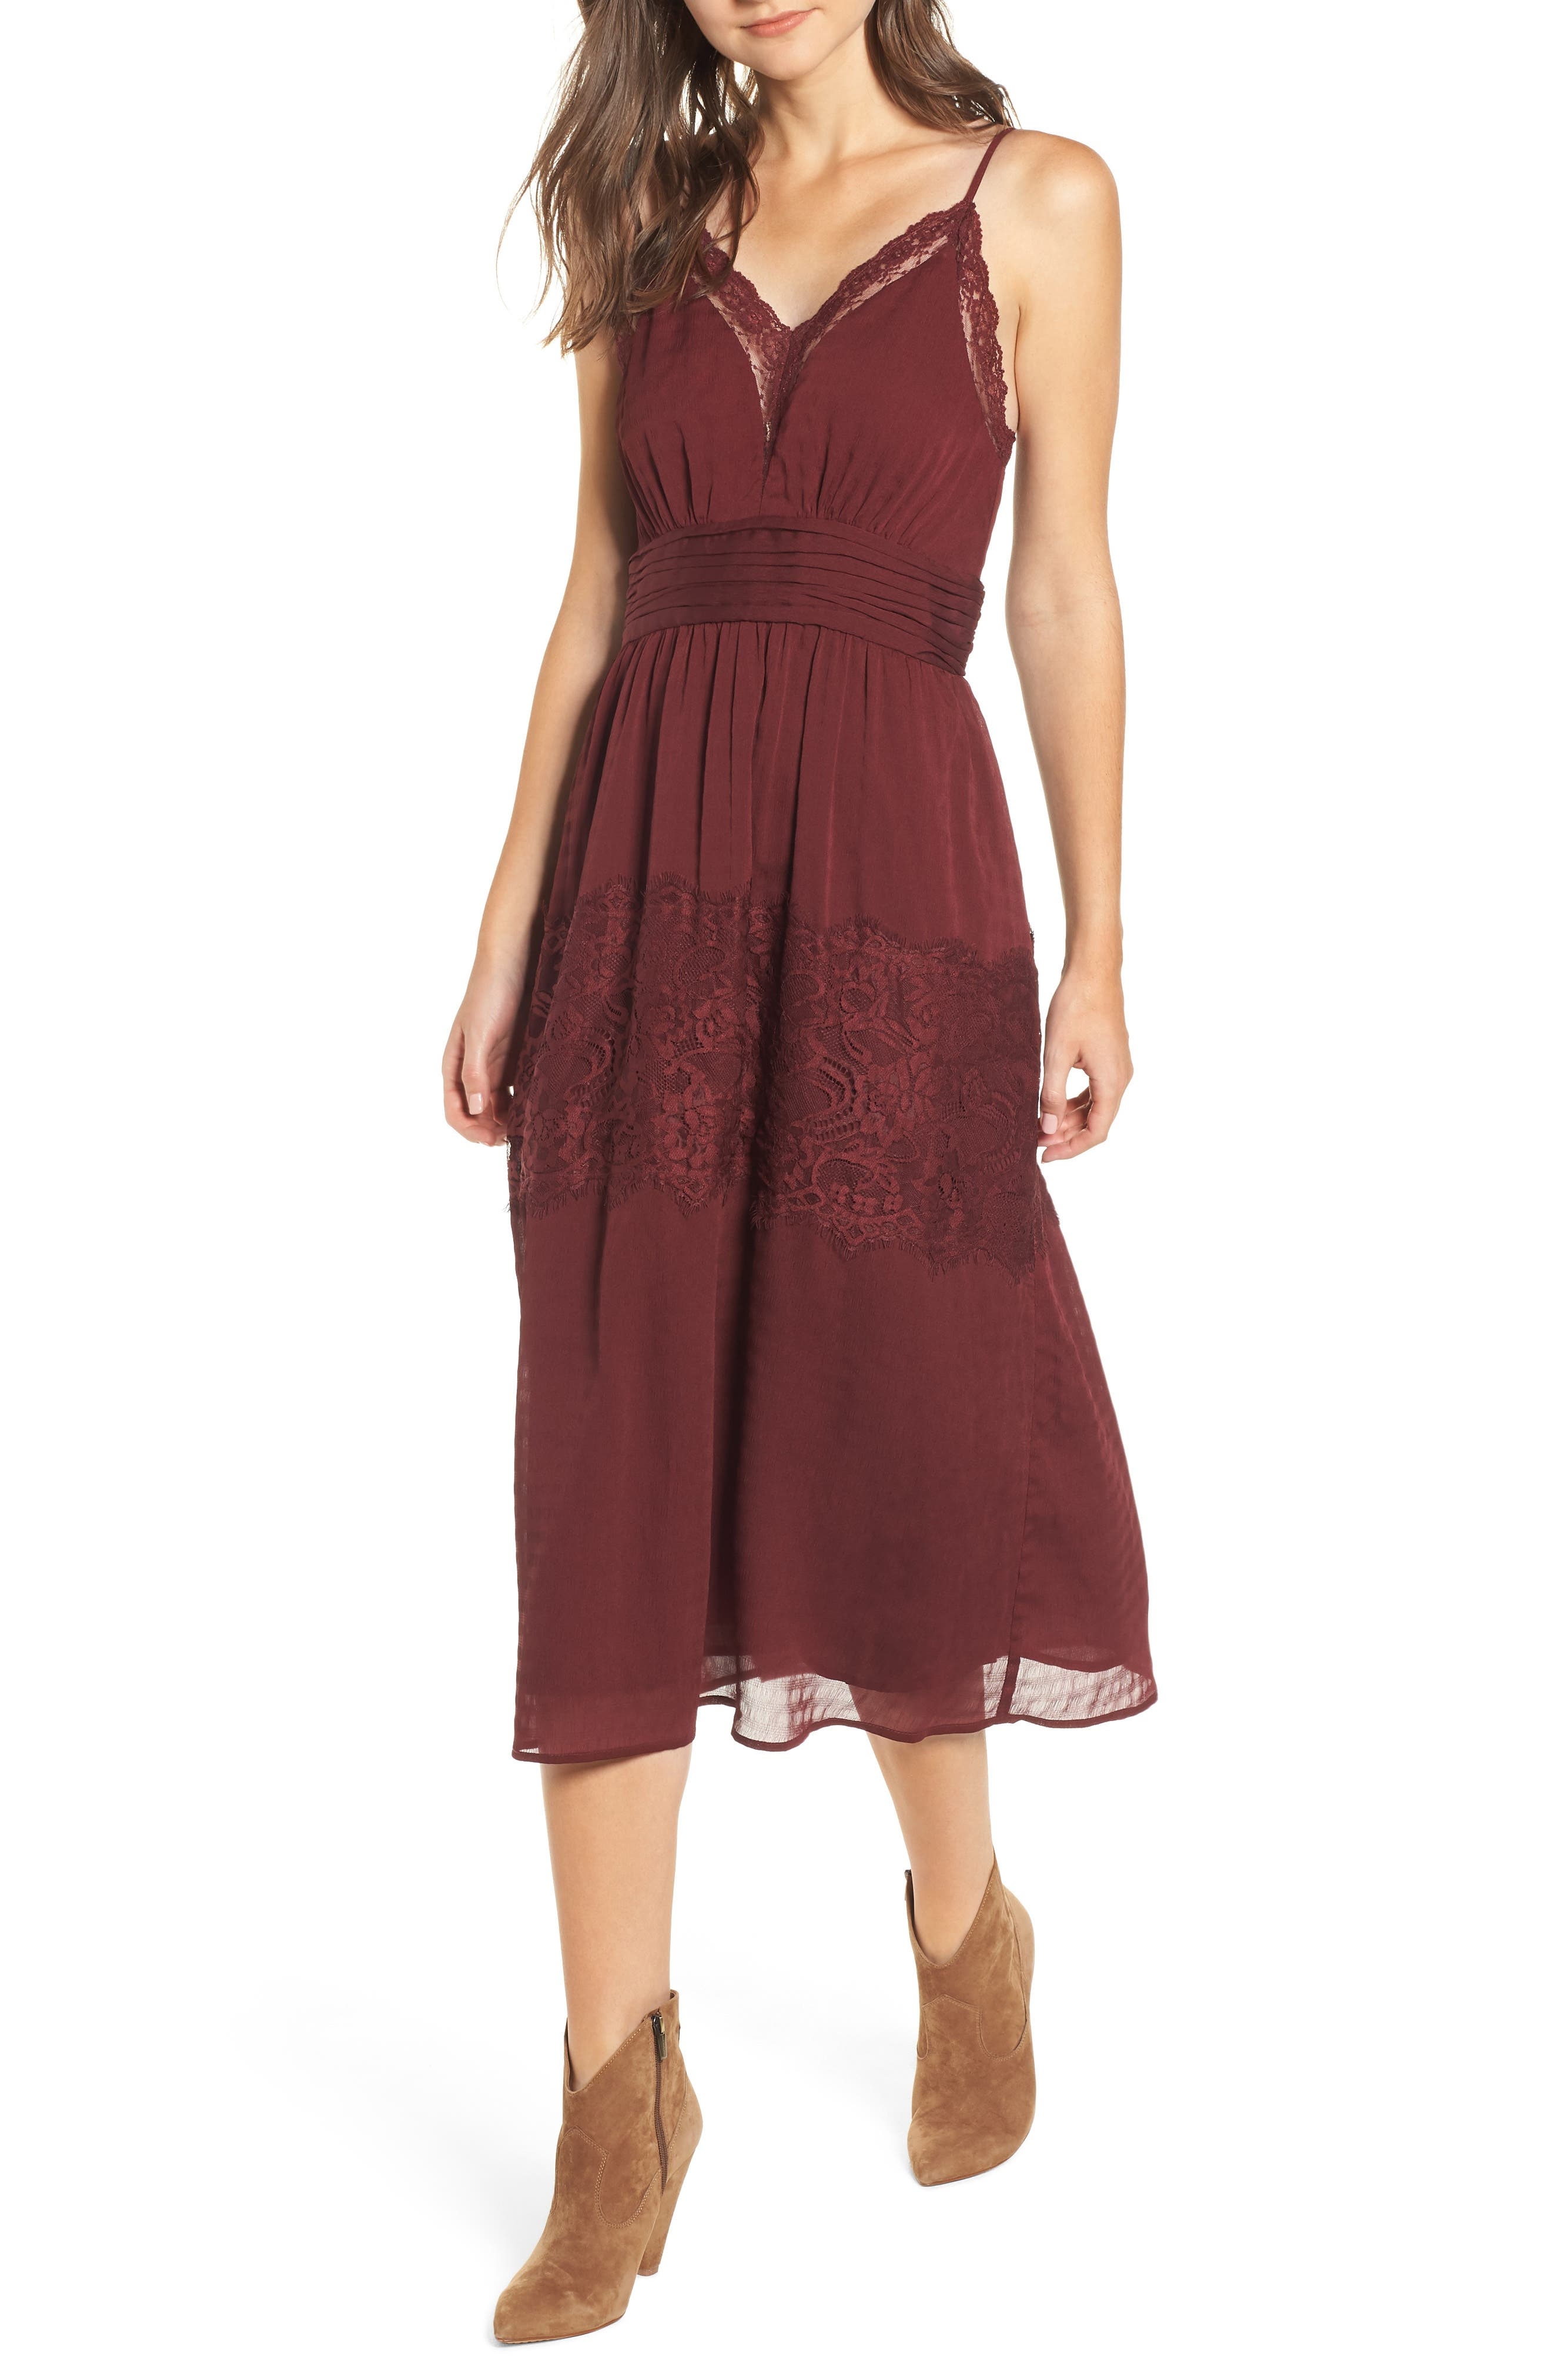 Lace Trim Midi Dress,                             Main thumbnail 1, color,                             930